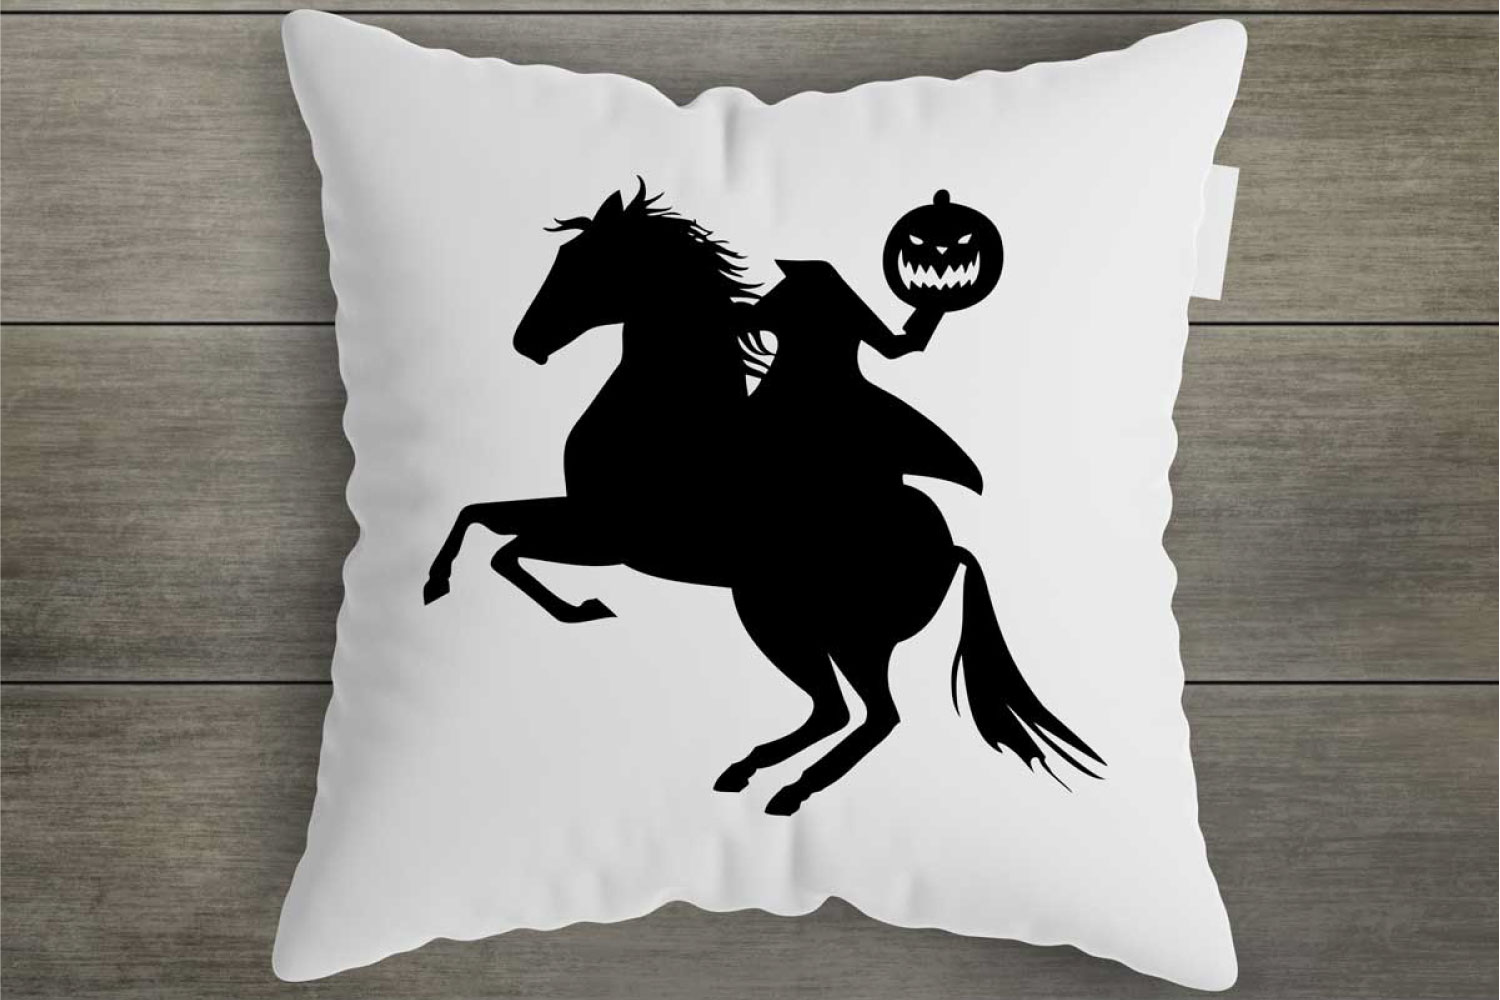 Headless Horseman svg example image 1